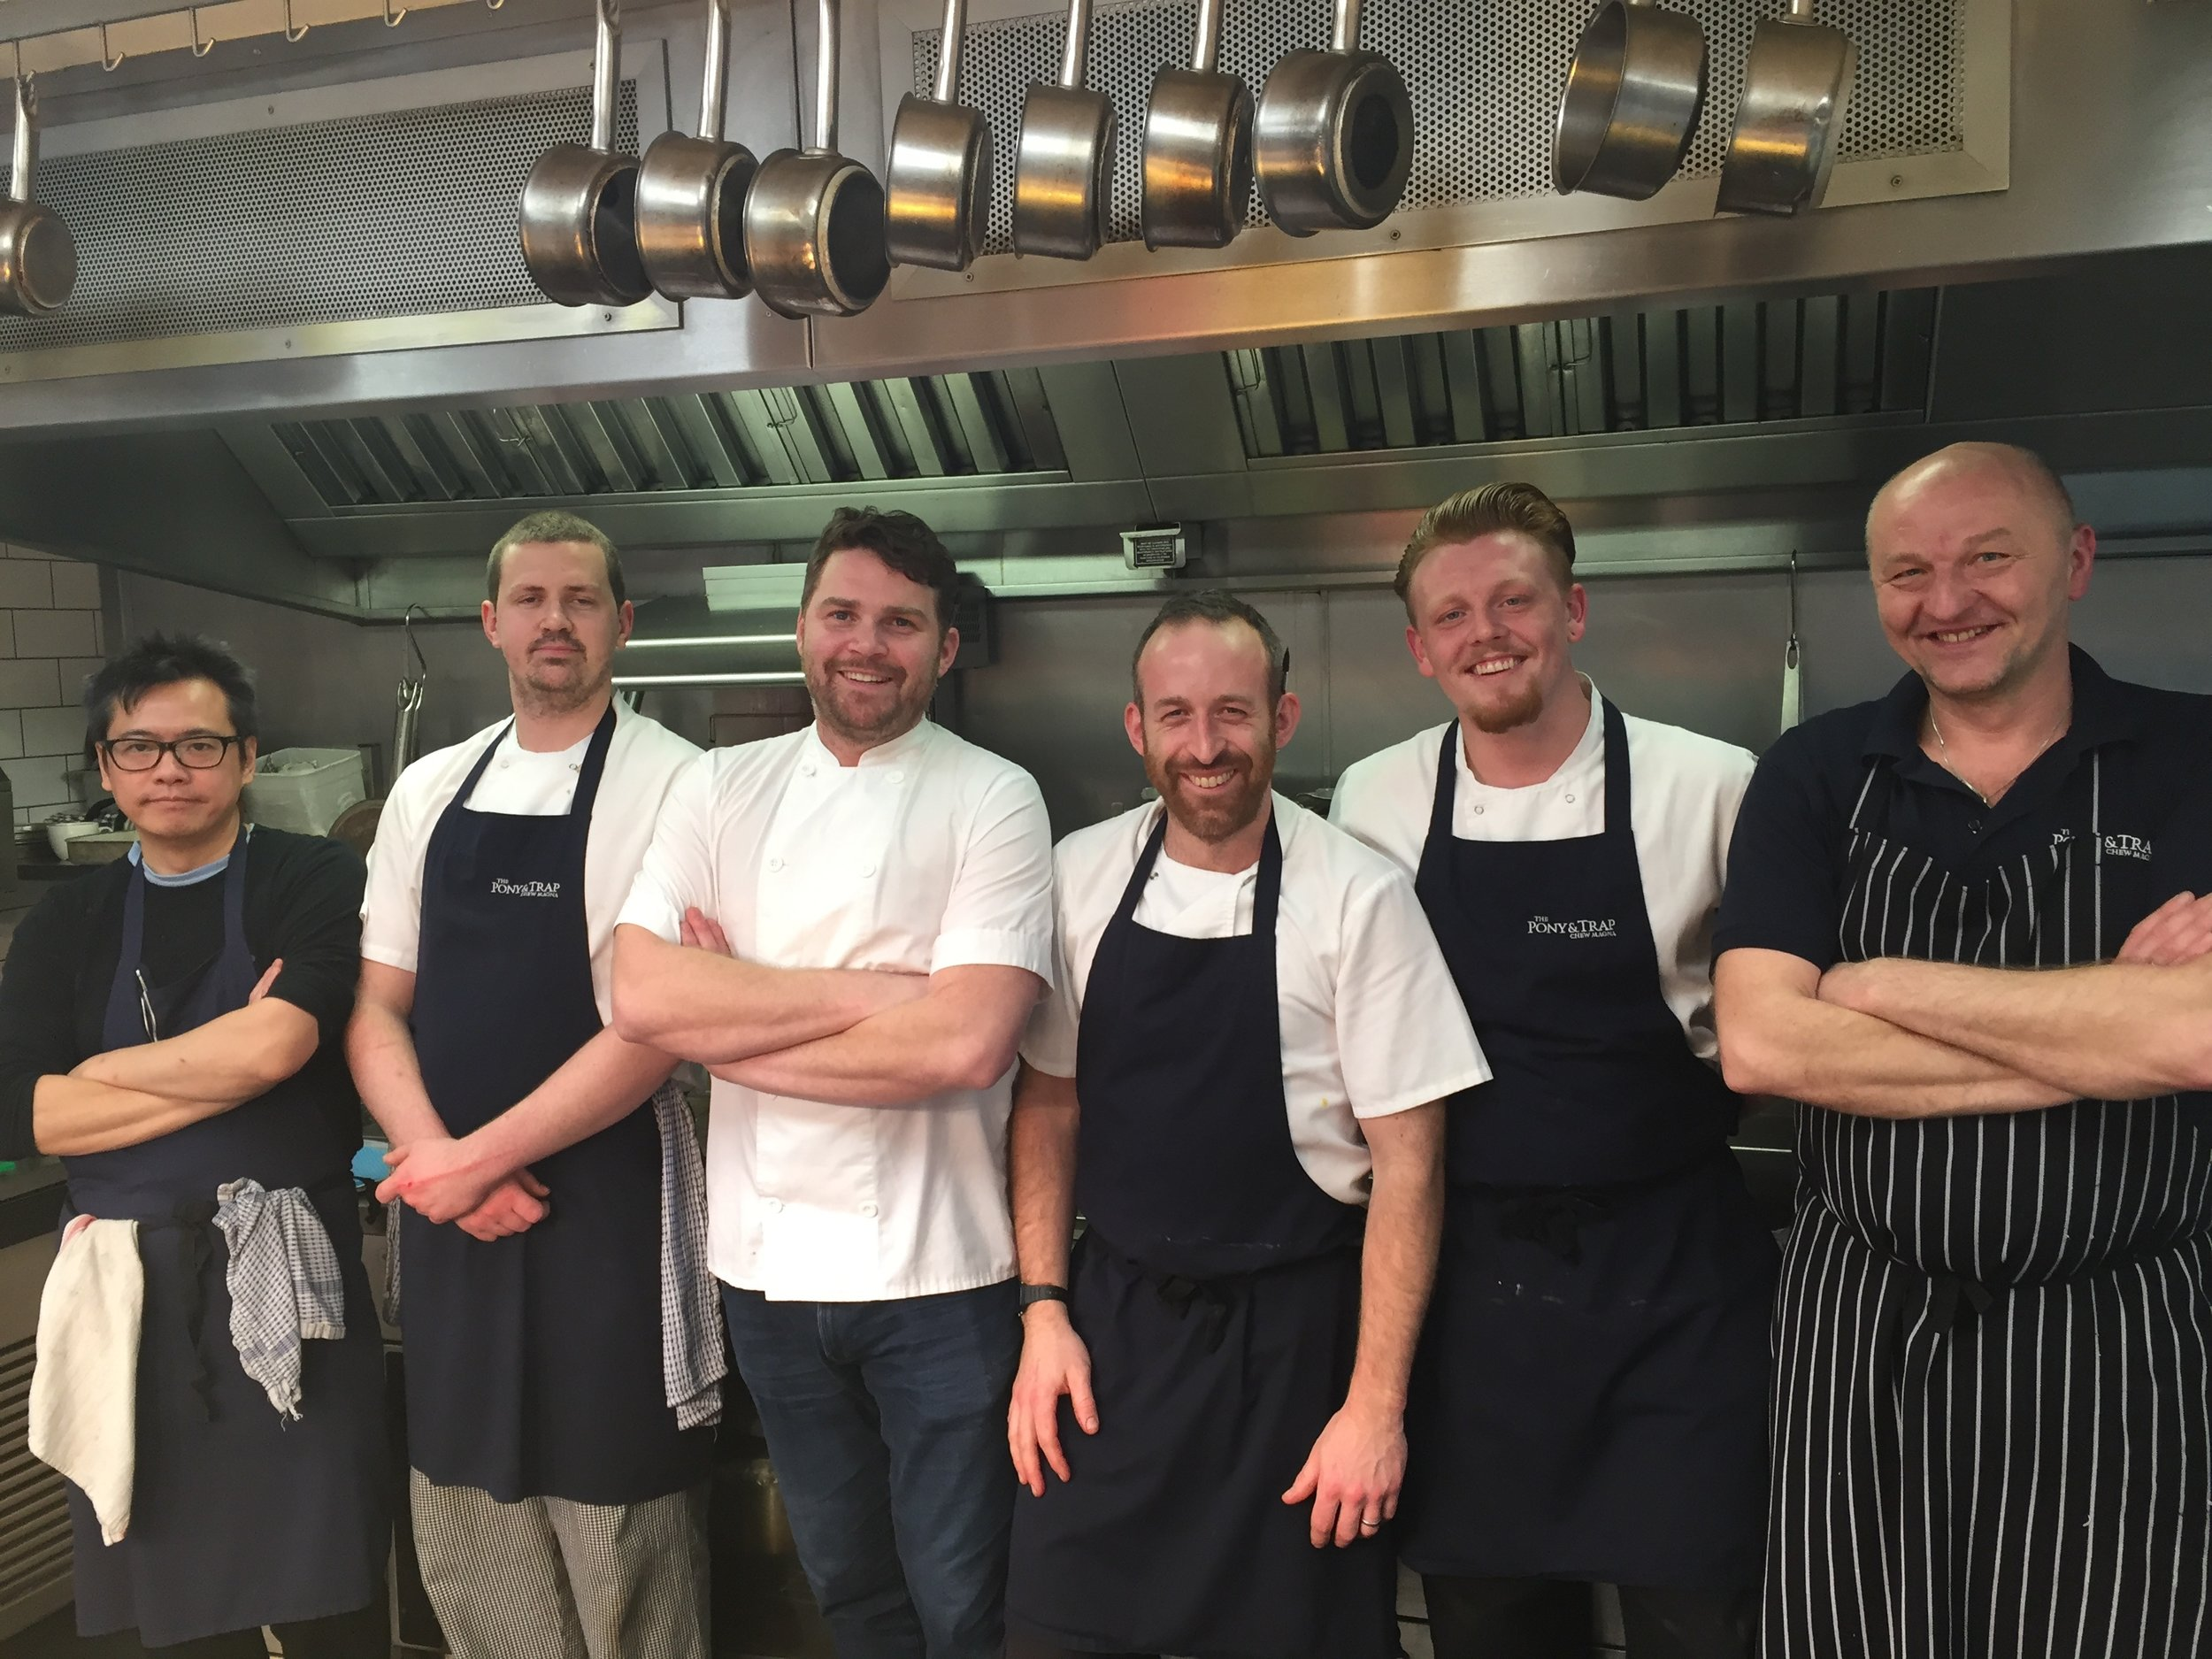 Jacky Chan (furthest left) with Josh Eggleton and the team at The Pony & Trap, Bristol